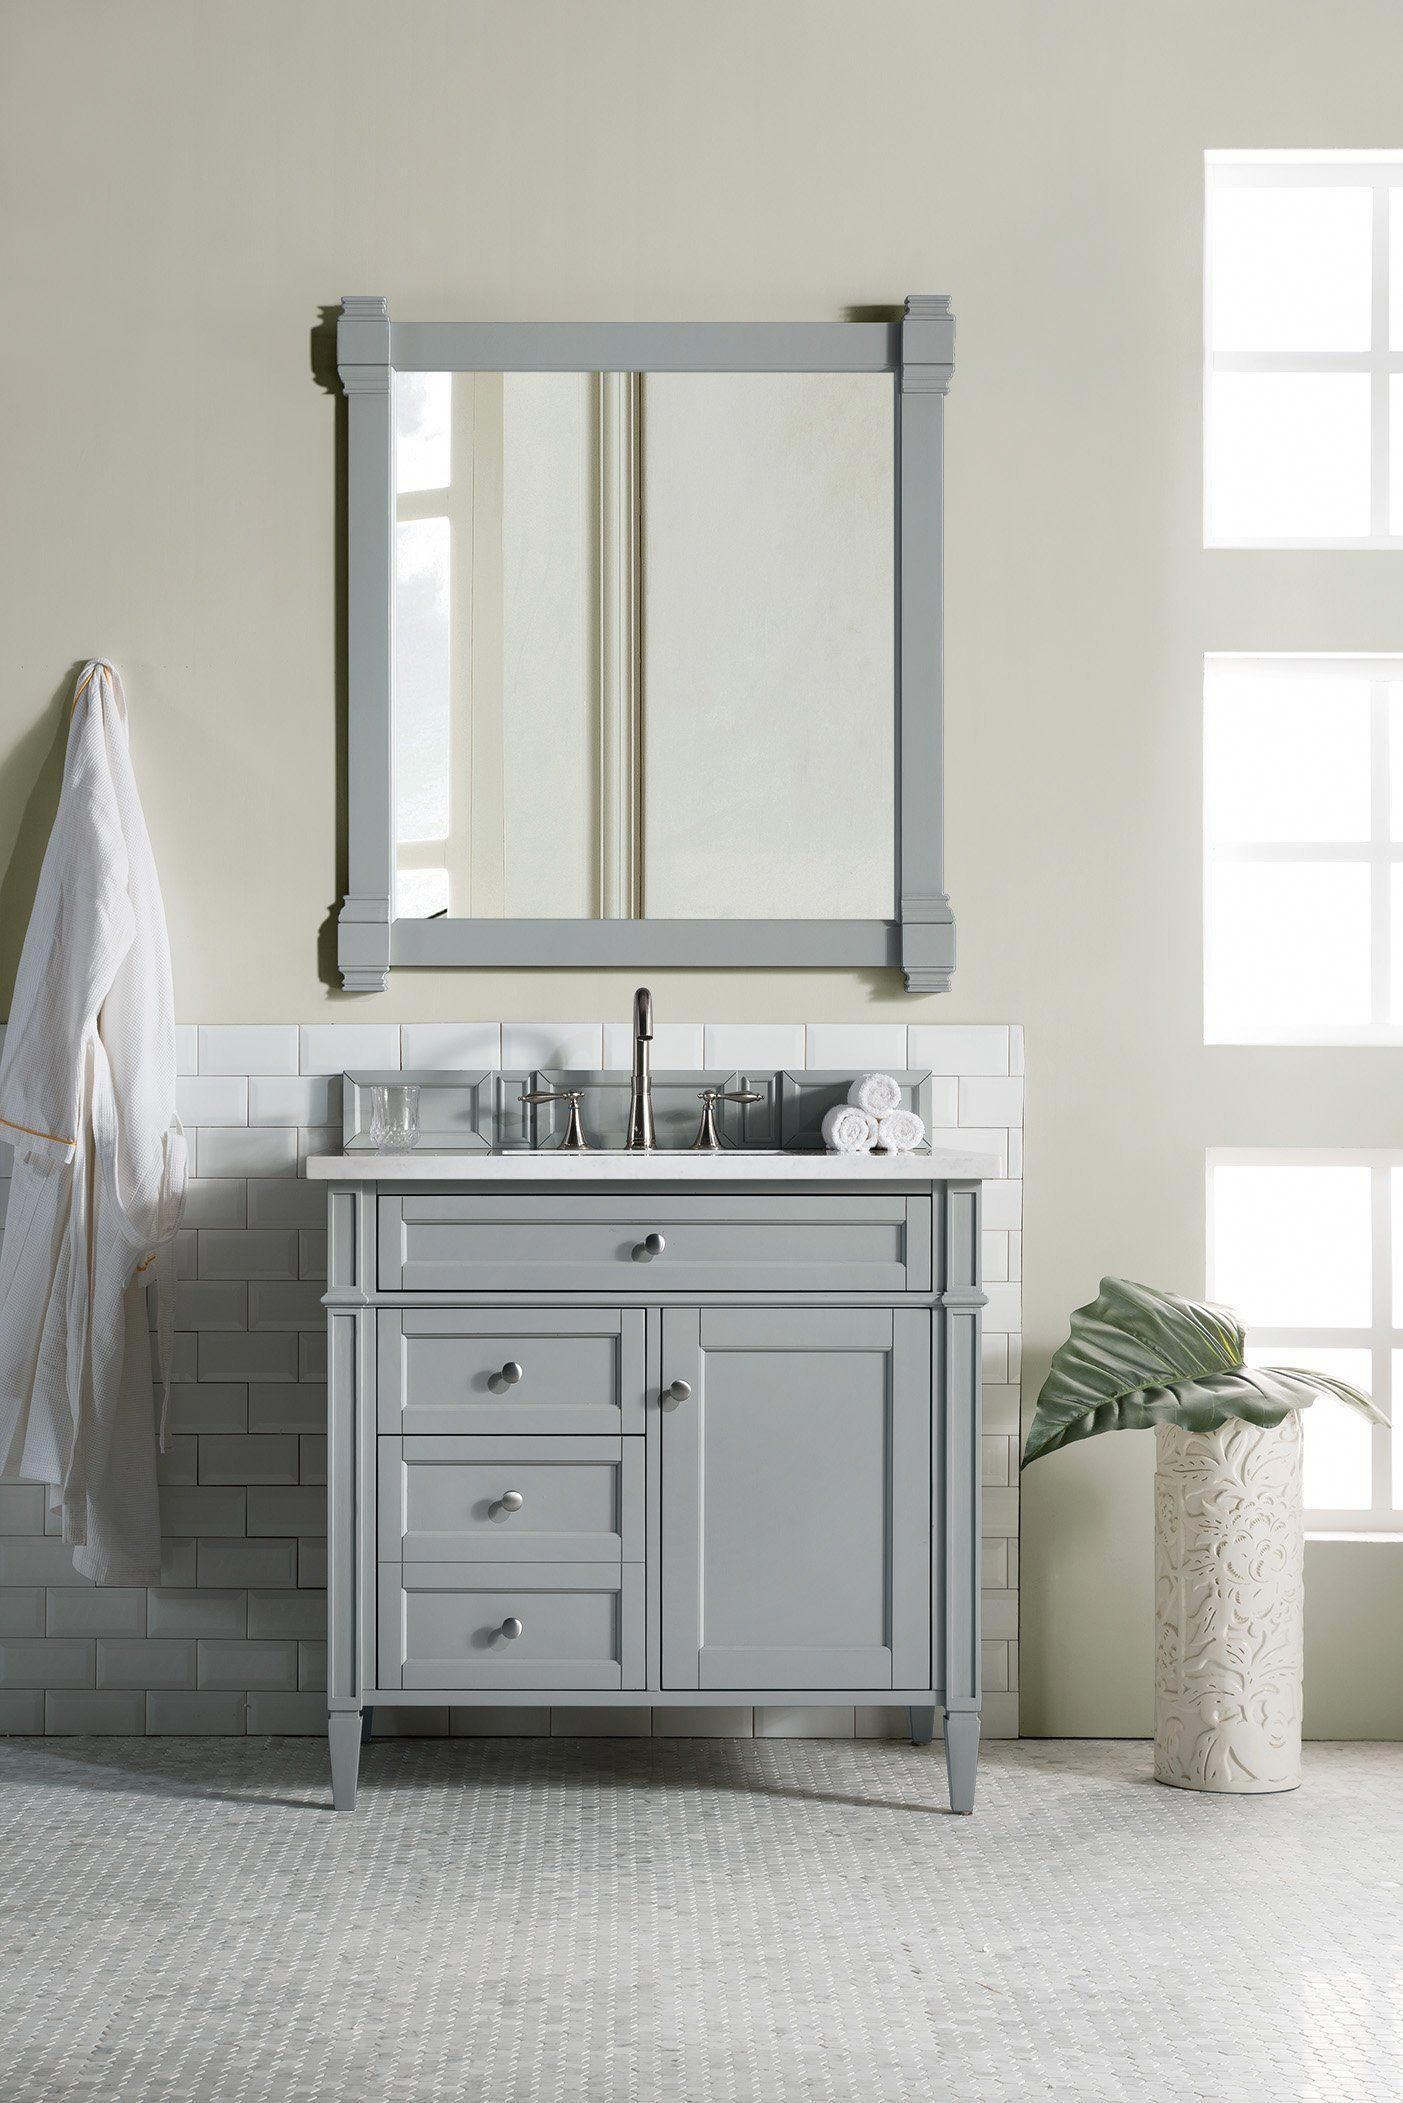 66 Small Modern Master Bathroom Ideas With Images Small Bathroom Vanities